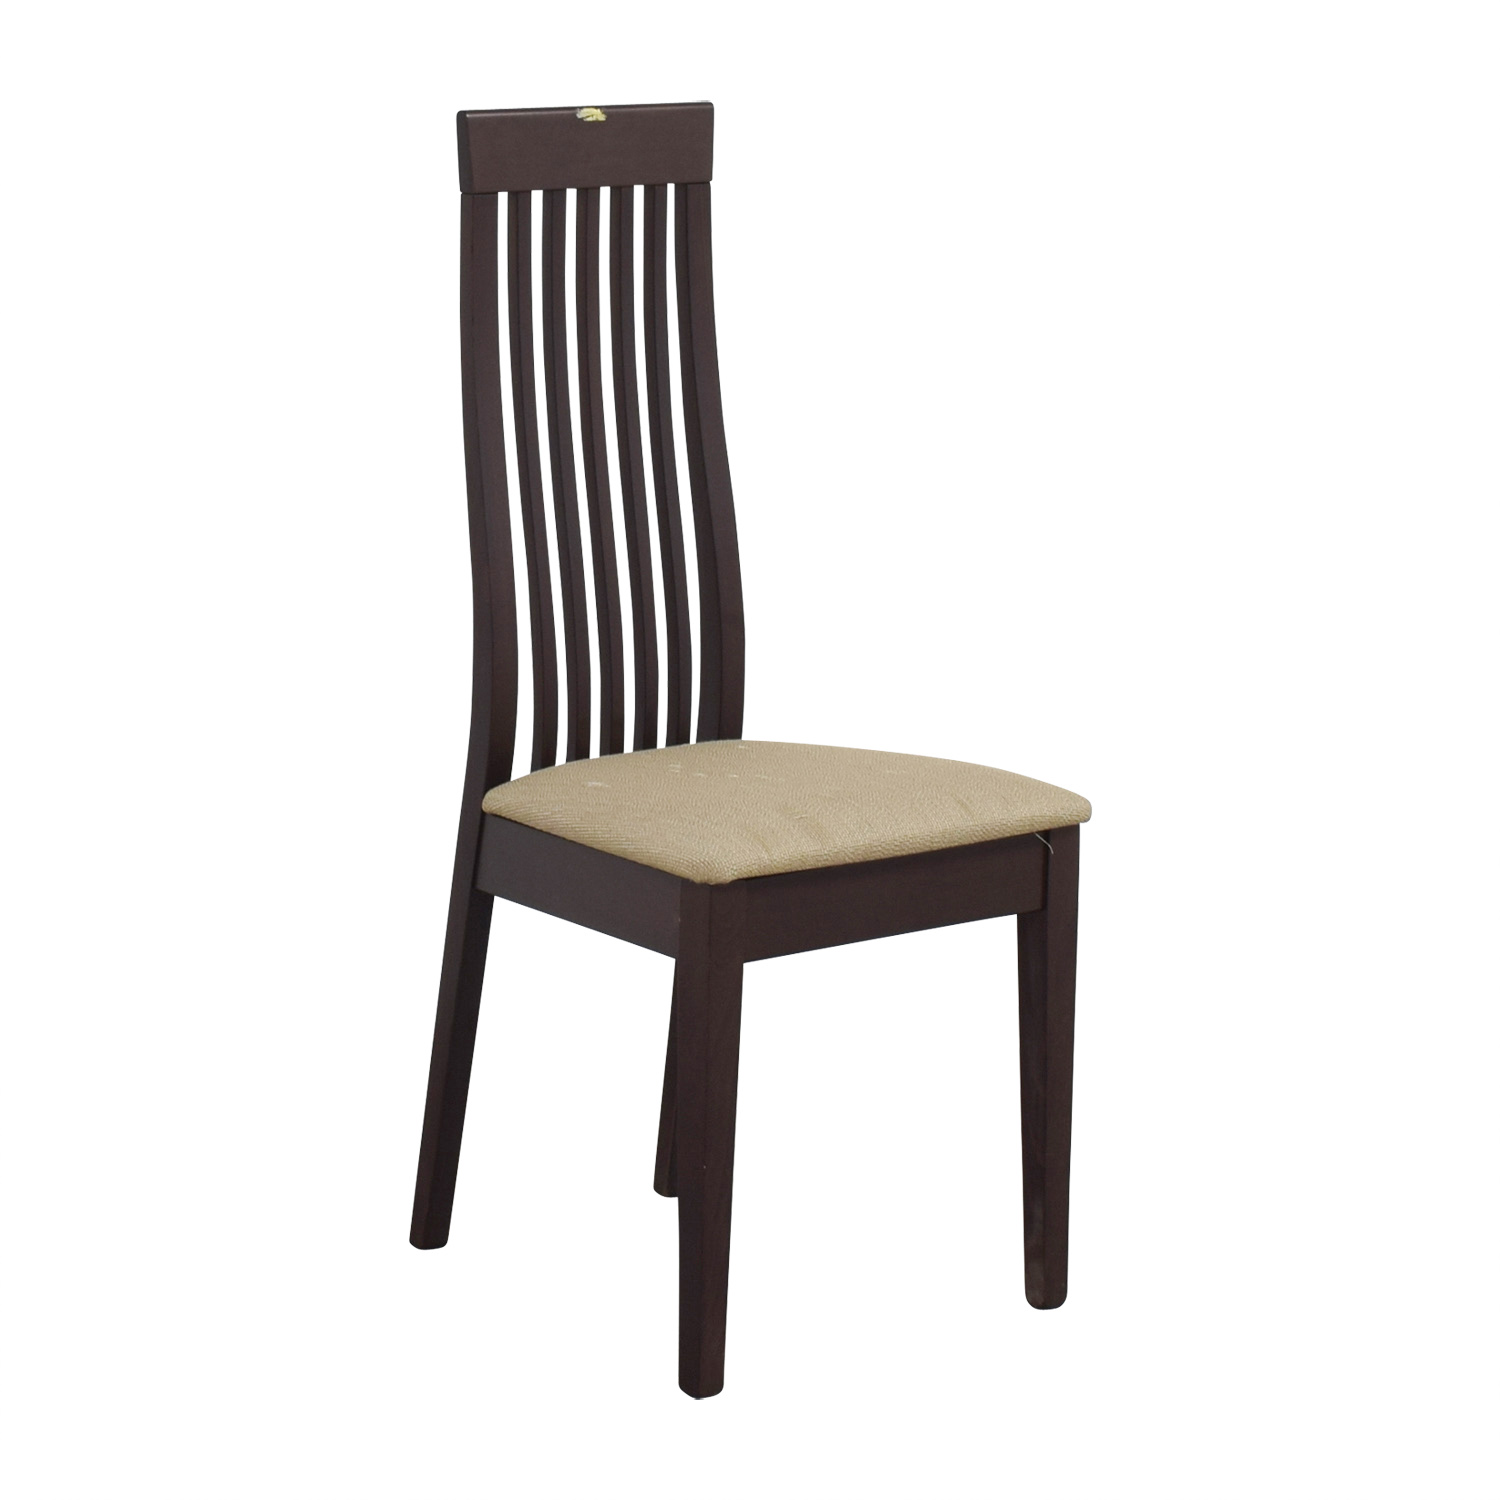 High Quality ... Buy Wood Vertical Slat Back With Tan Cushioned Chair Online ...